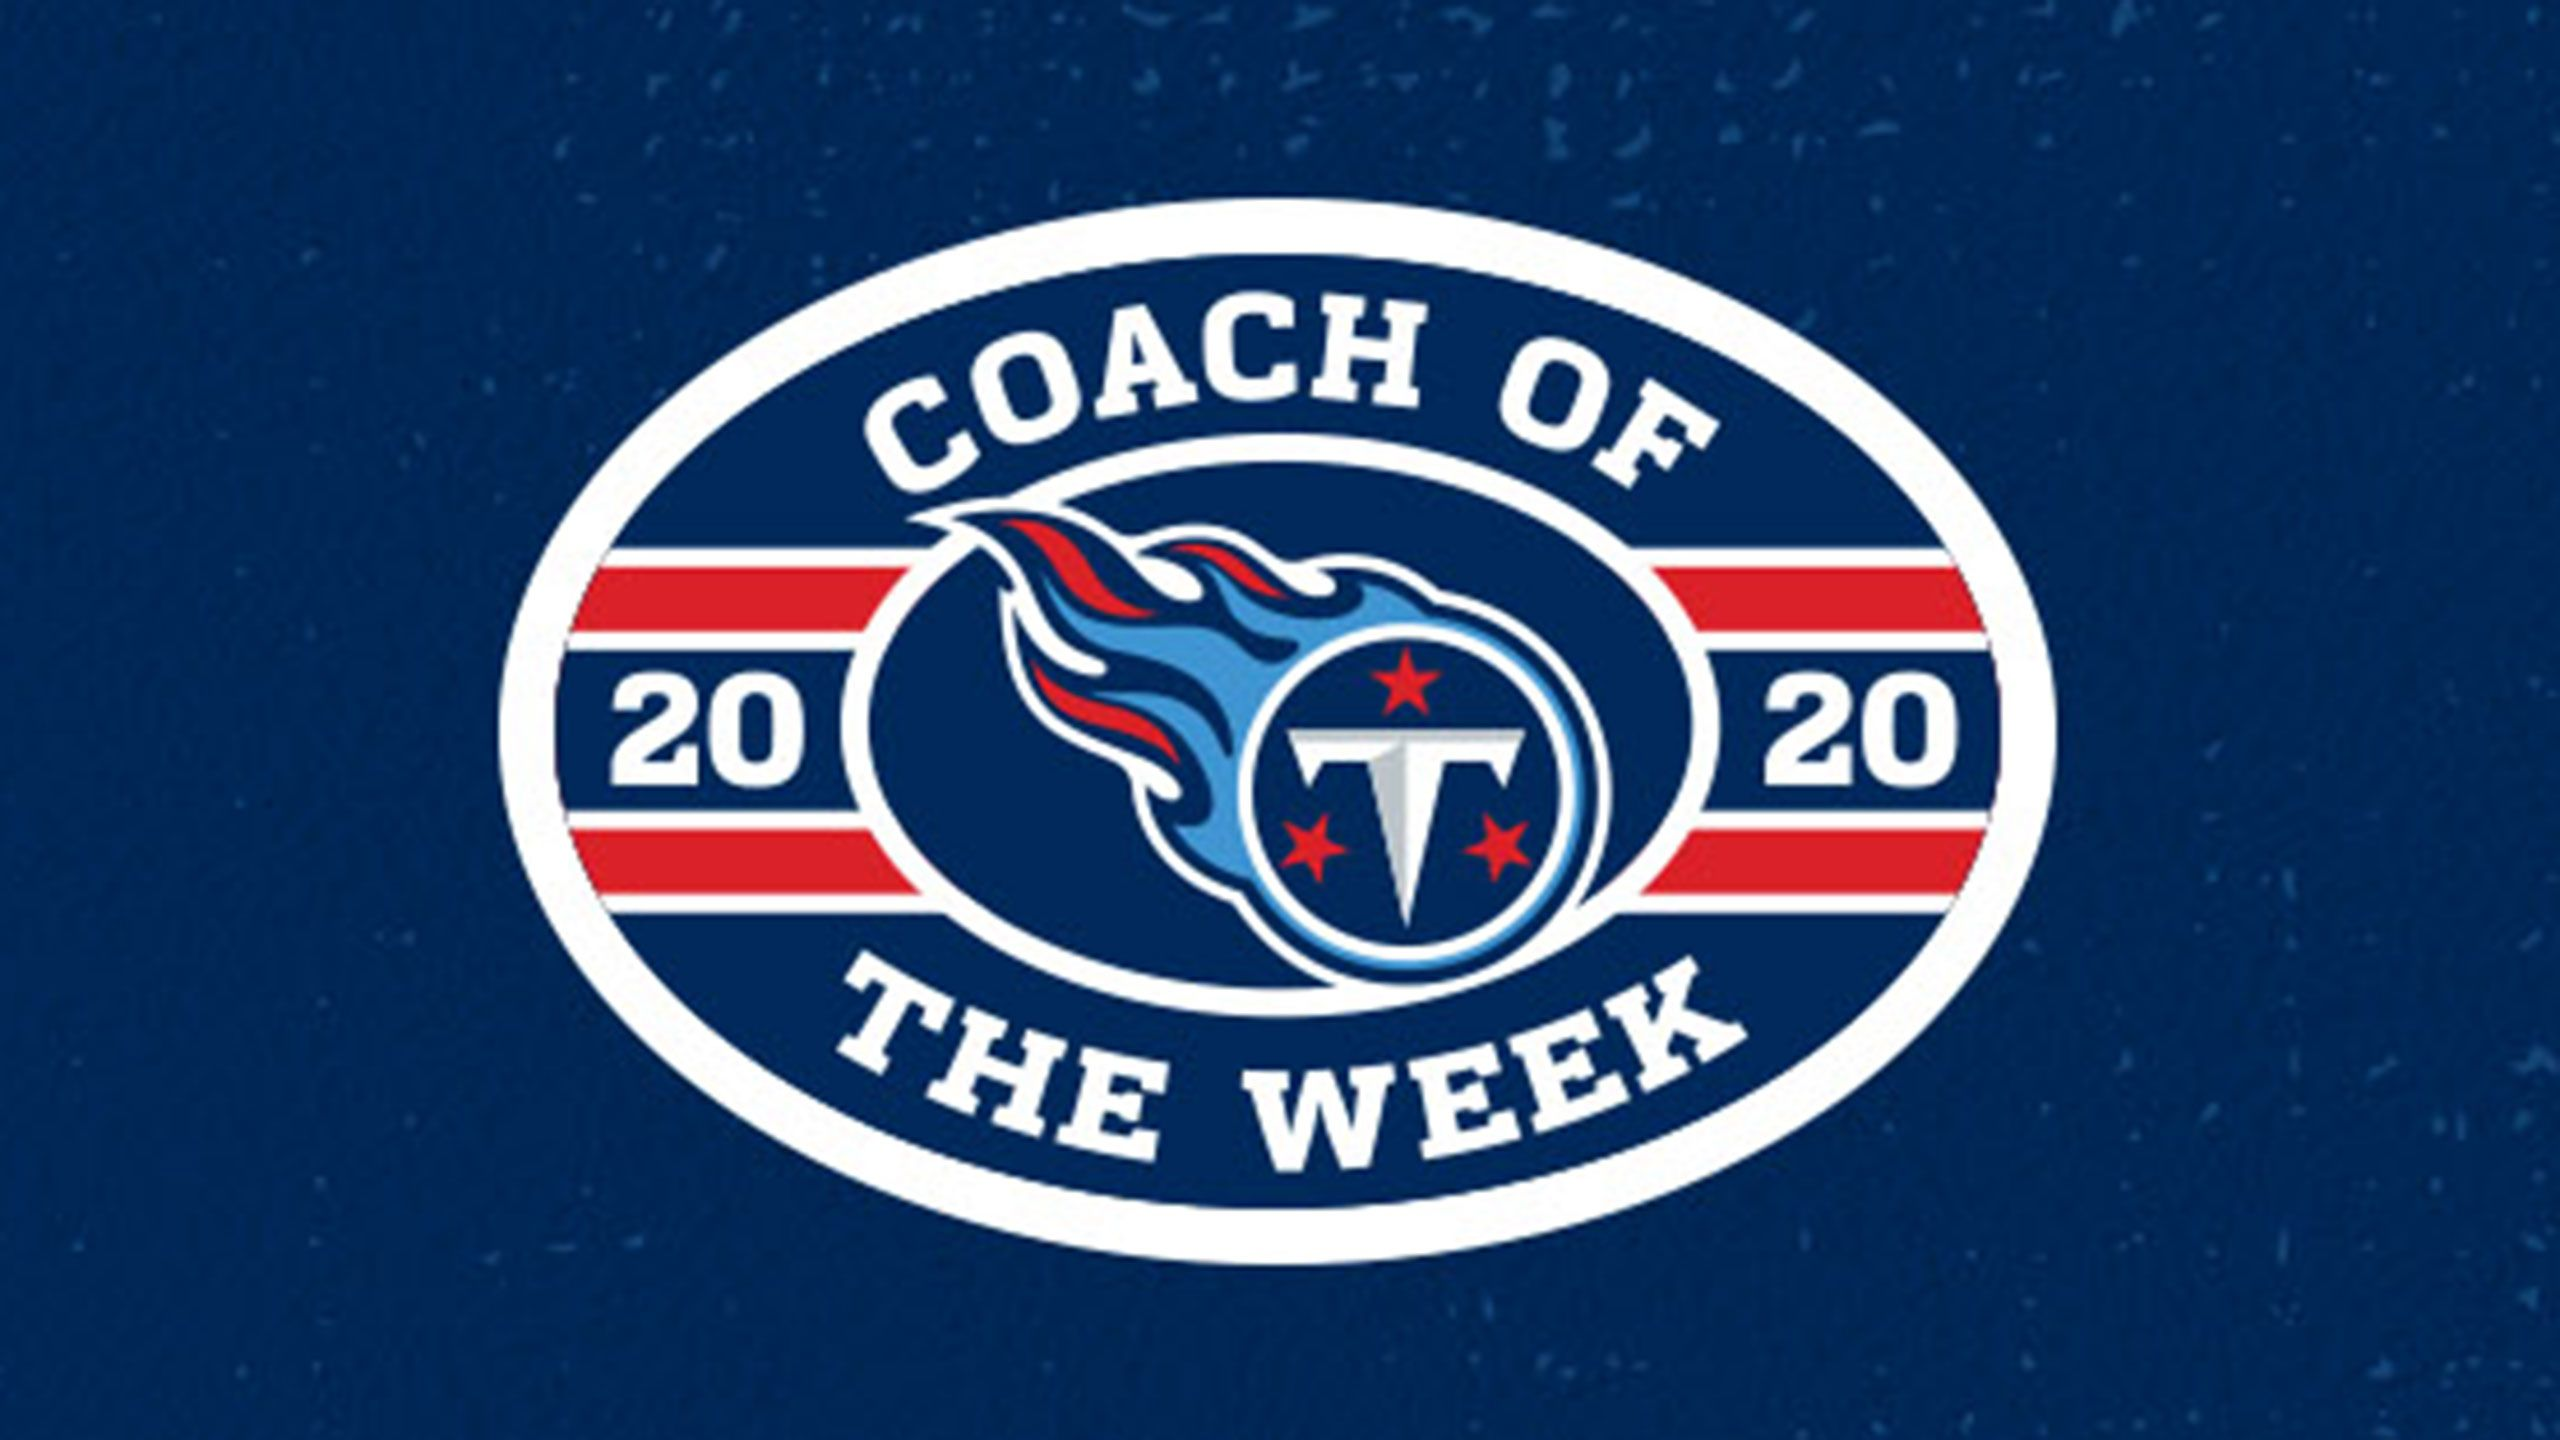 2020-coach-of-the-week